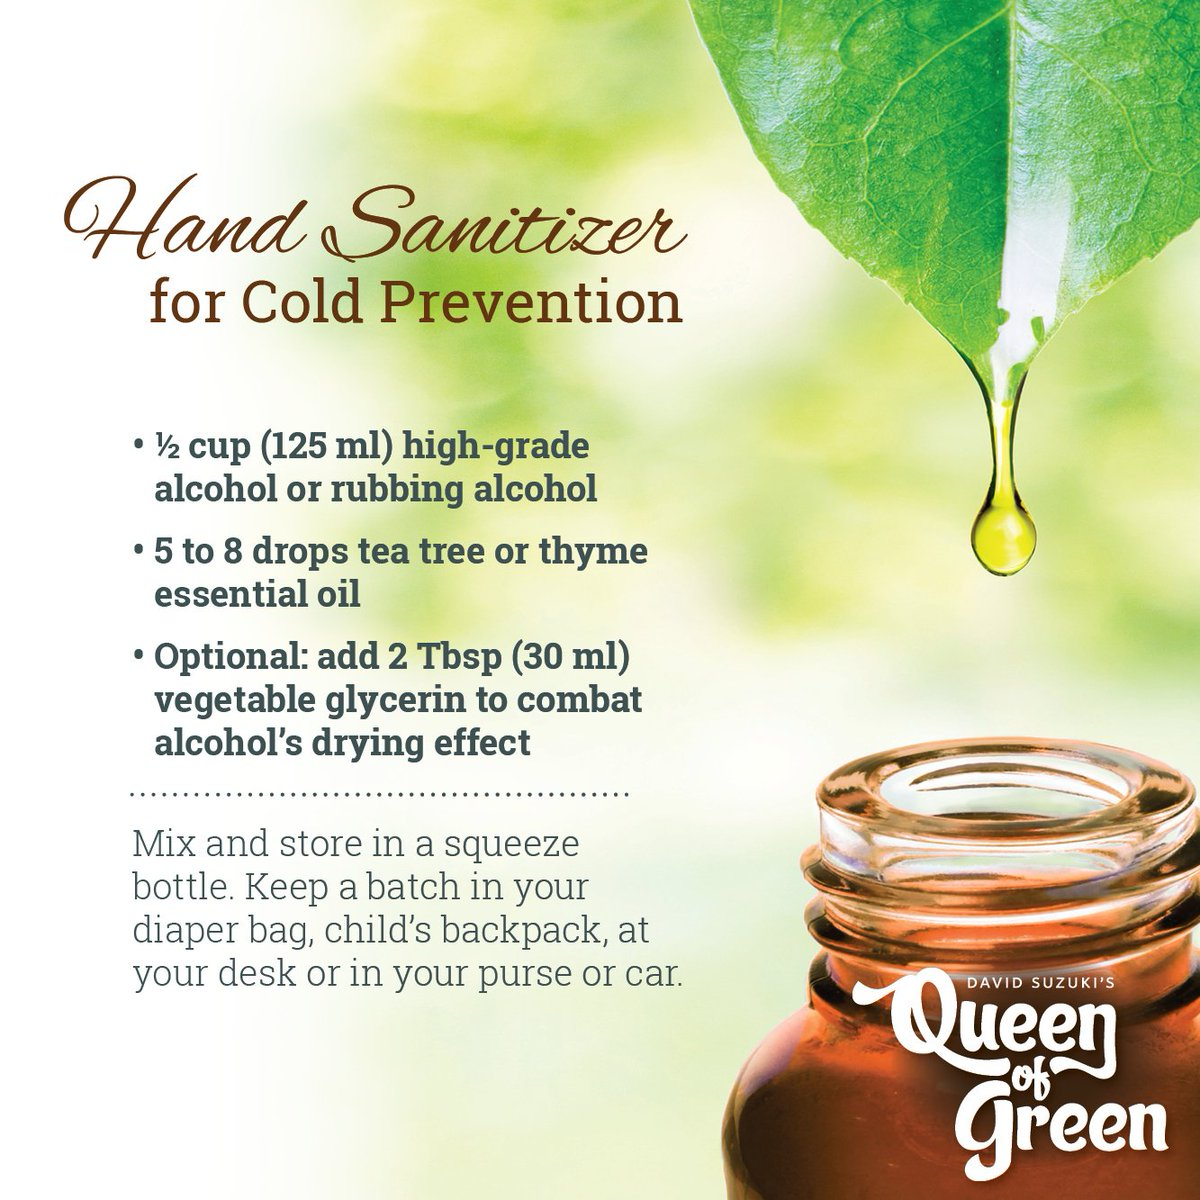 David Suzuki Fdn On Twitter Its Flu Season Protect Yourself From Vegetable Glycerine 125 Ml Germs With This Great Hand Sanitizer Recipe Our Queenofgreen